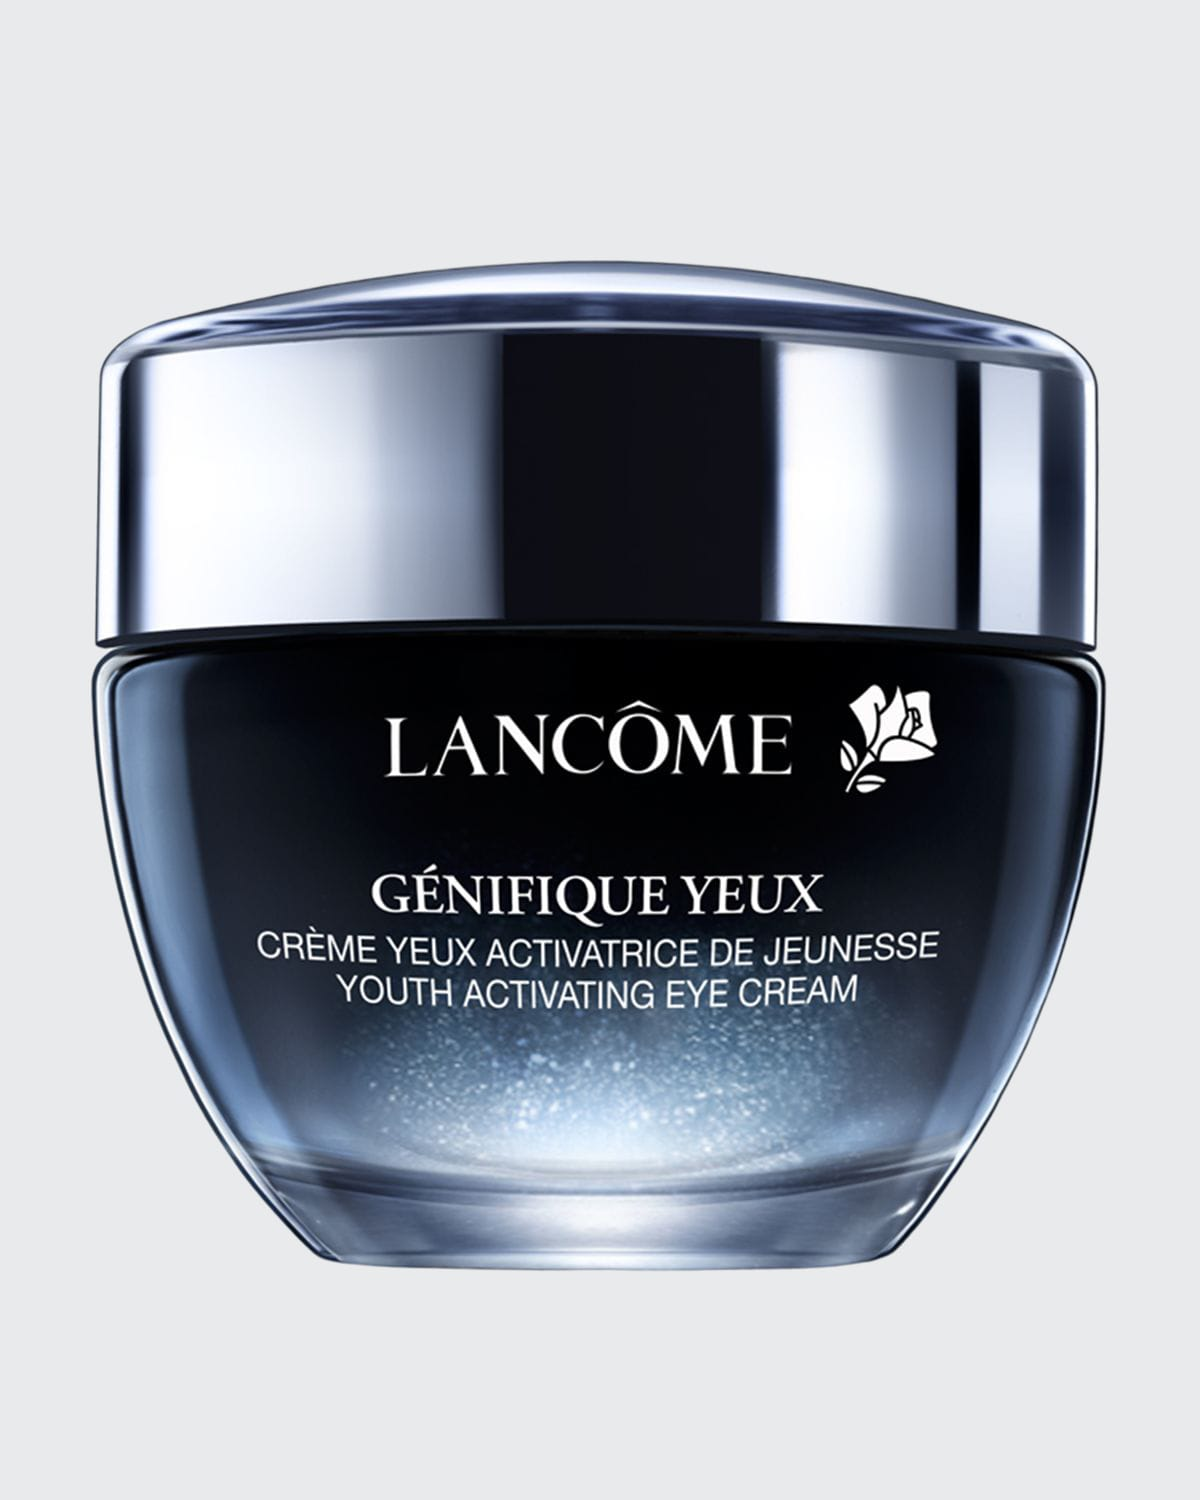 0.5 oz. Advanced G & #233nifique Yeux Youth Activating Smoothing Eye Cream